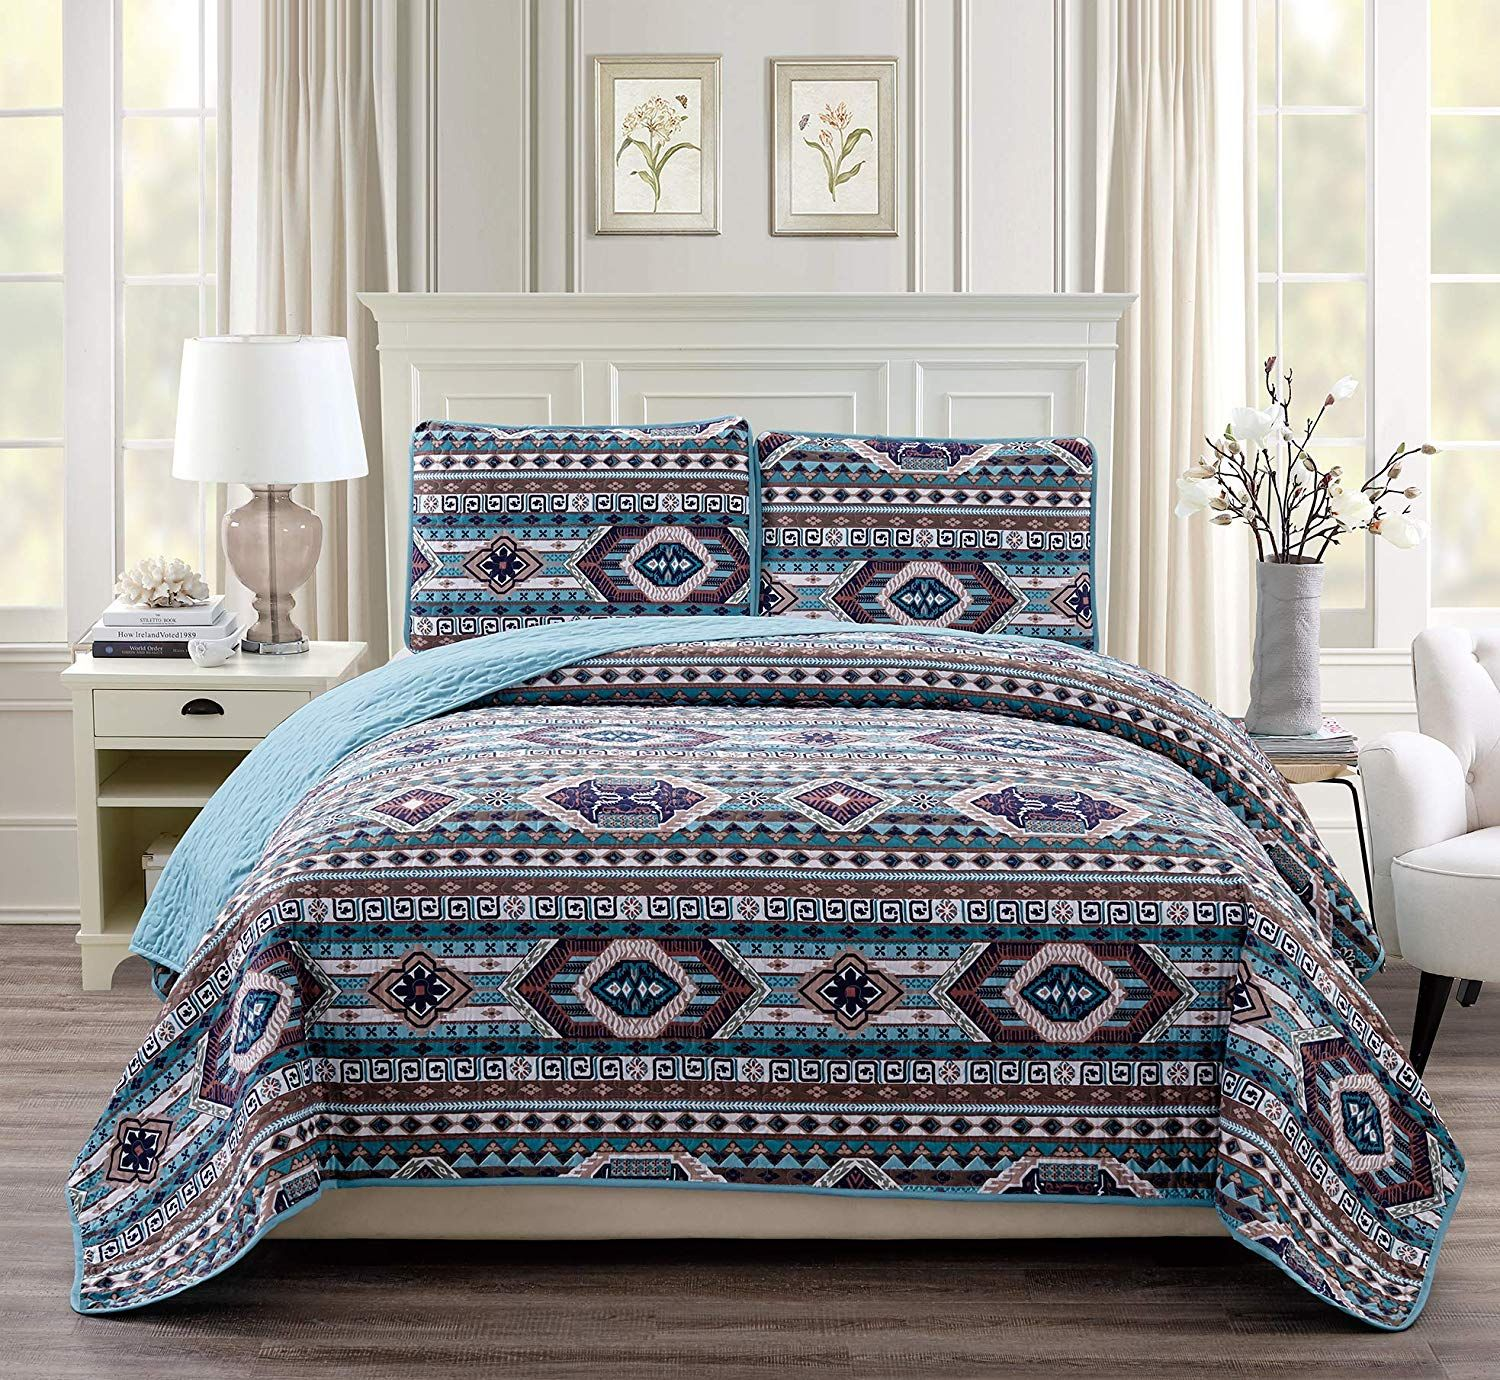 Rustic Western Southwestern Native American Quilt Set in